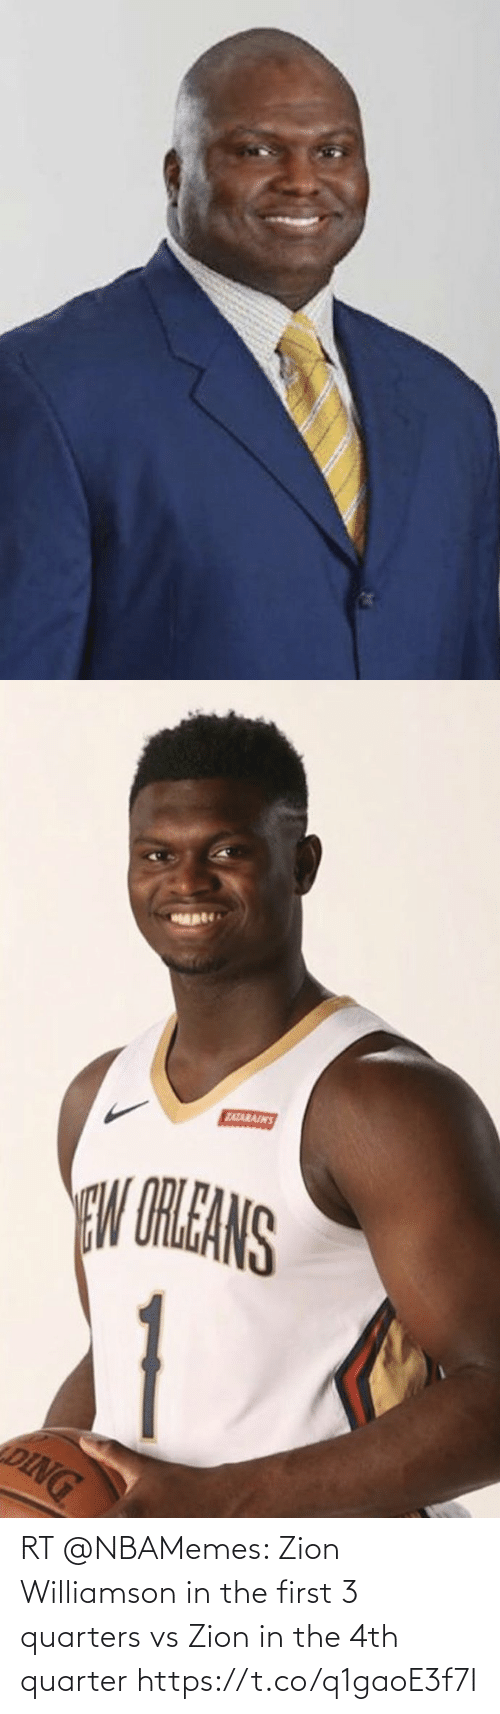 Nbamemes: RT @NBAMemes: Zion Williamson in the first 3 quarters vs Zion in the 4th quarter https://t.co/q1gaoE3f7I